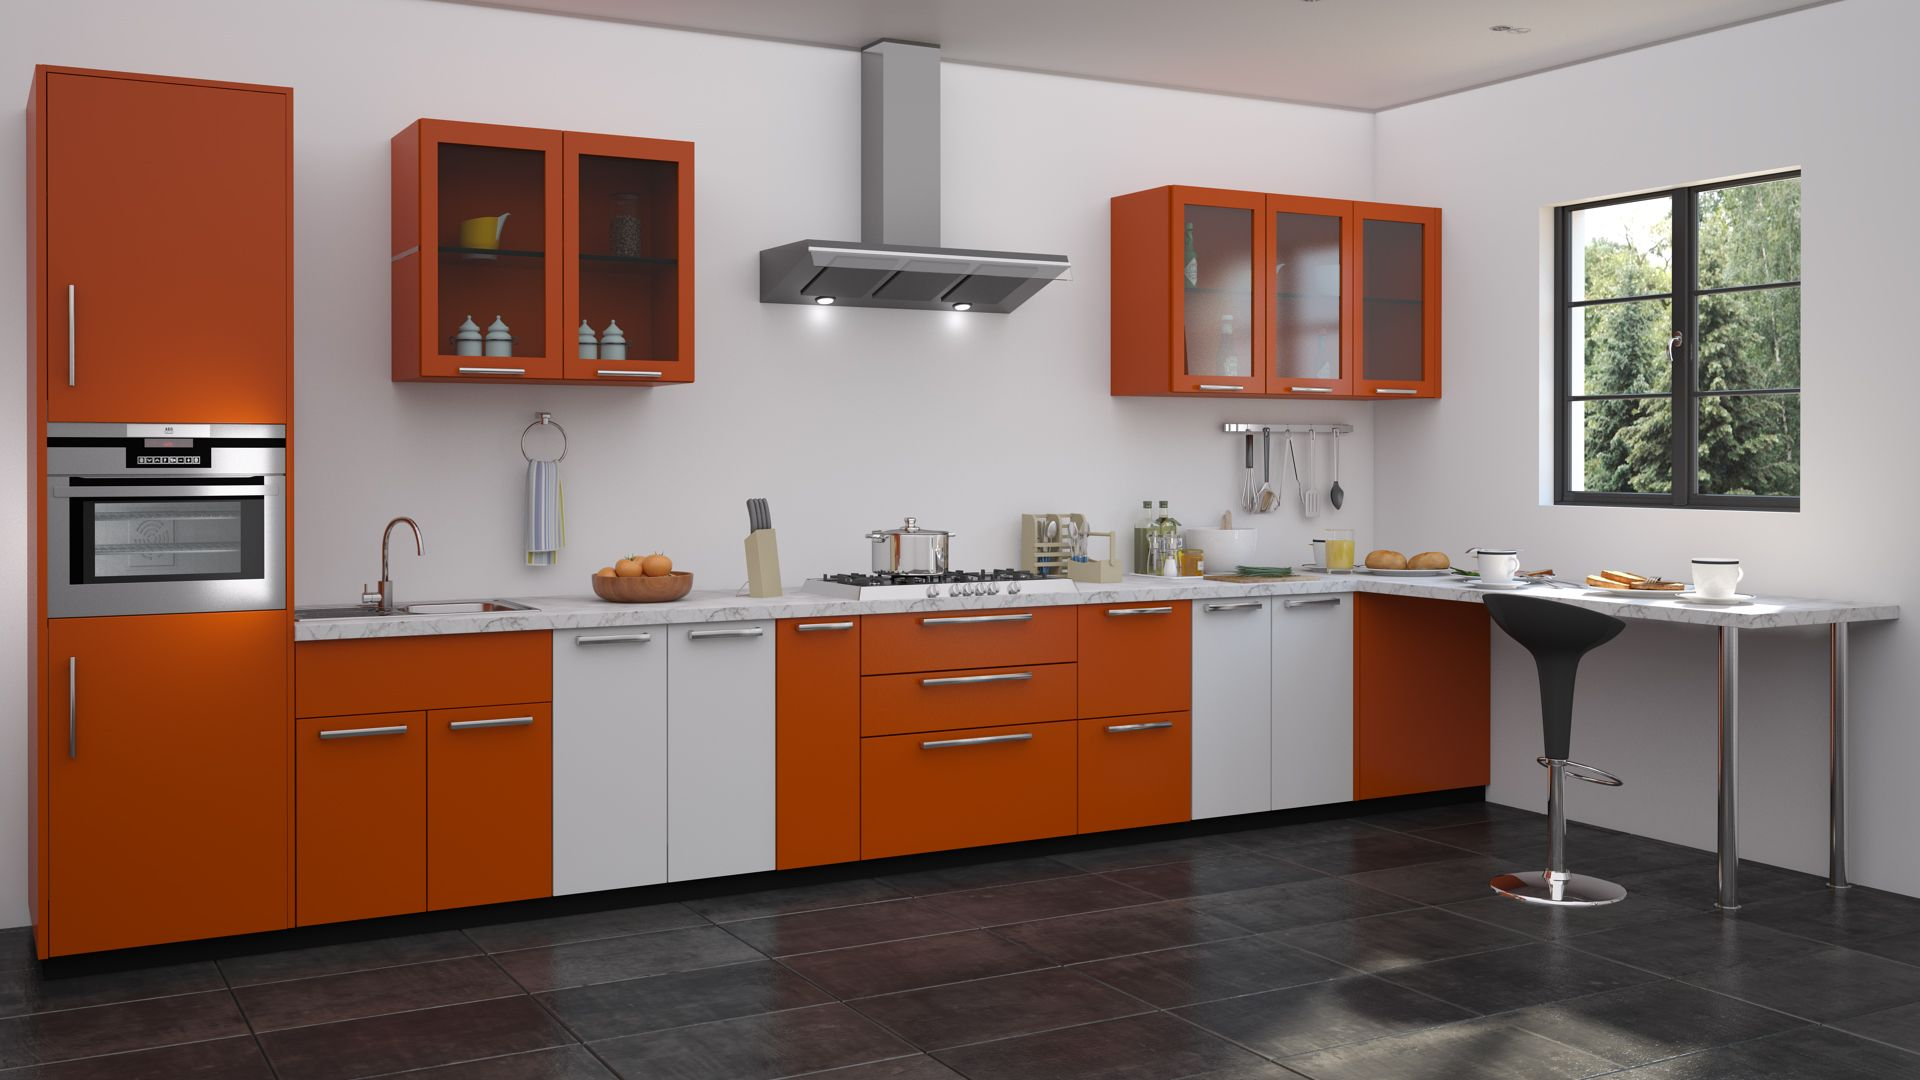 Orange modular kitchen design straight kitchen designs pinterest kitchen prices kitchen Modular kitchen design and cost